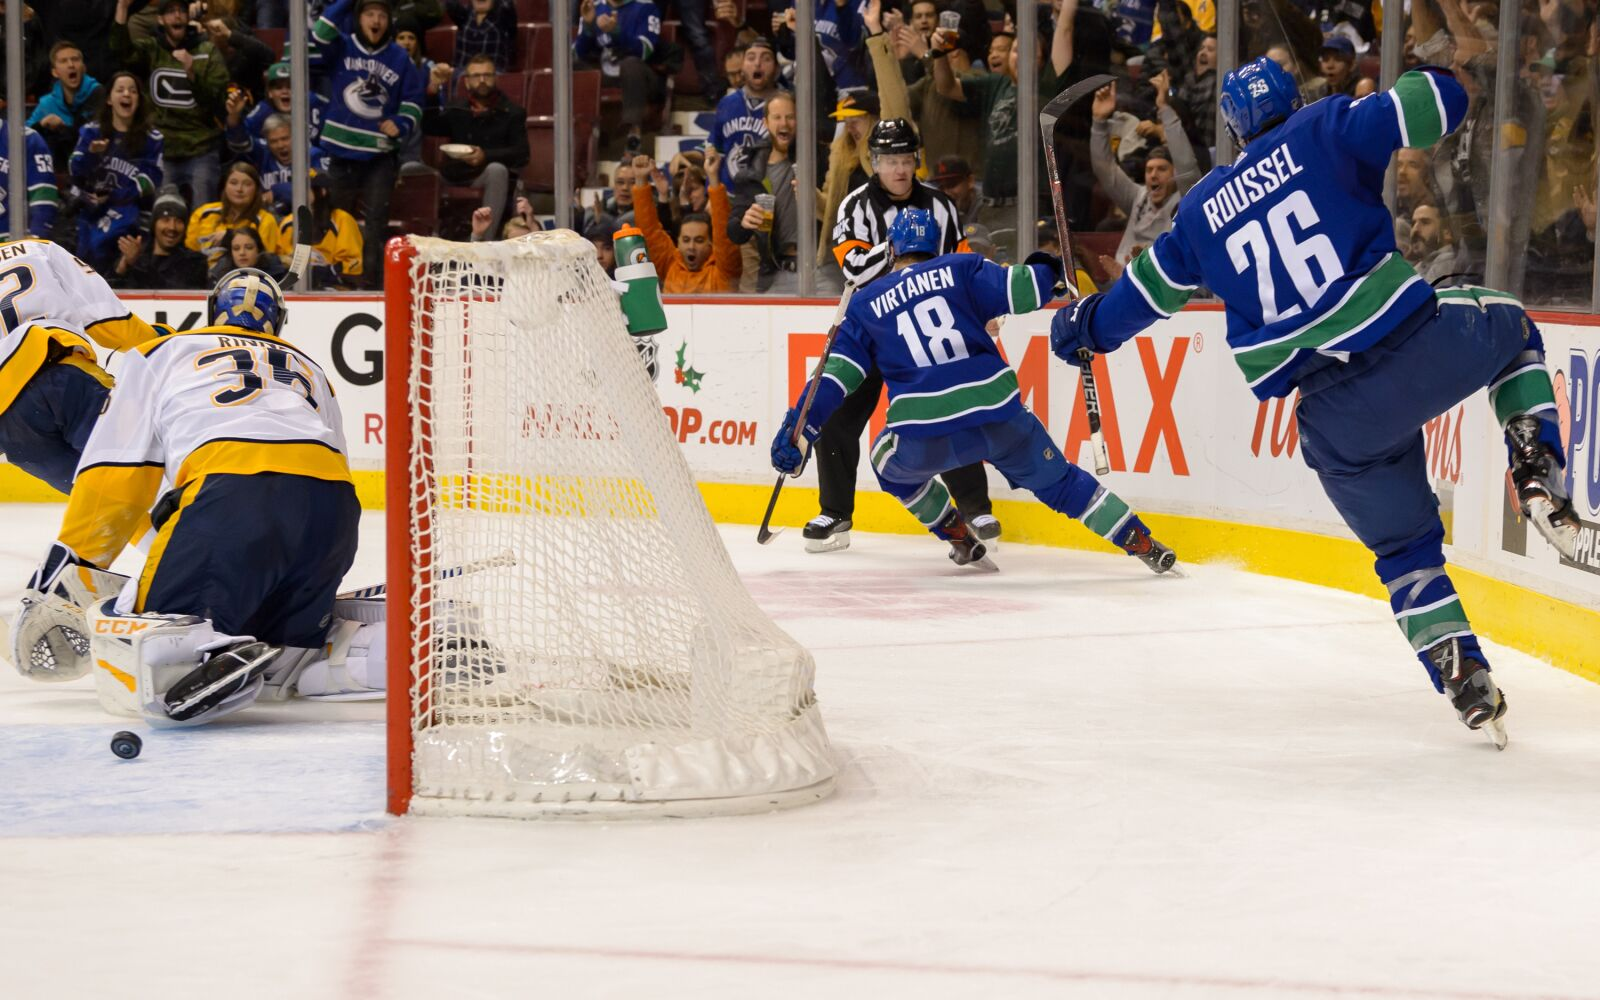 Canucks: Jake Virtanen is on the verge of validation